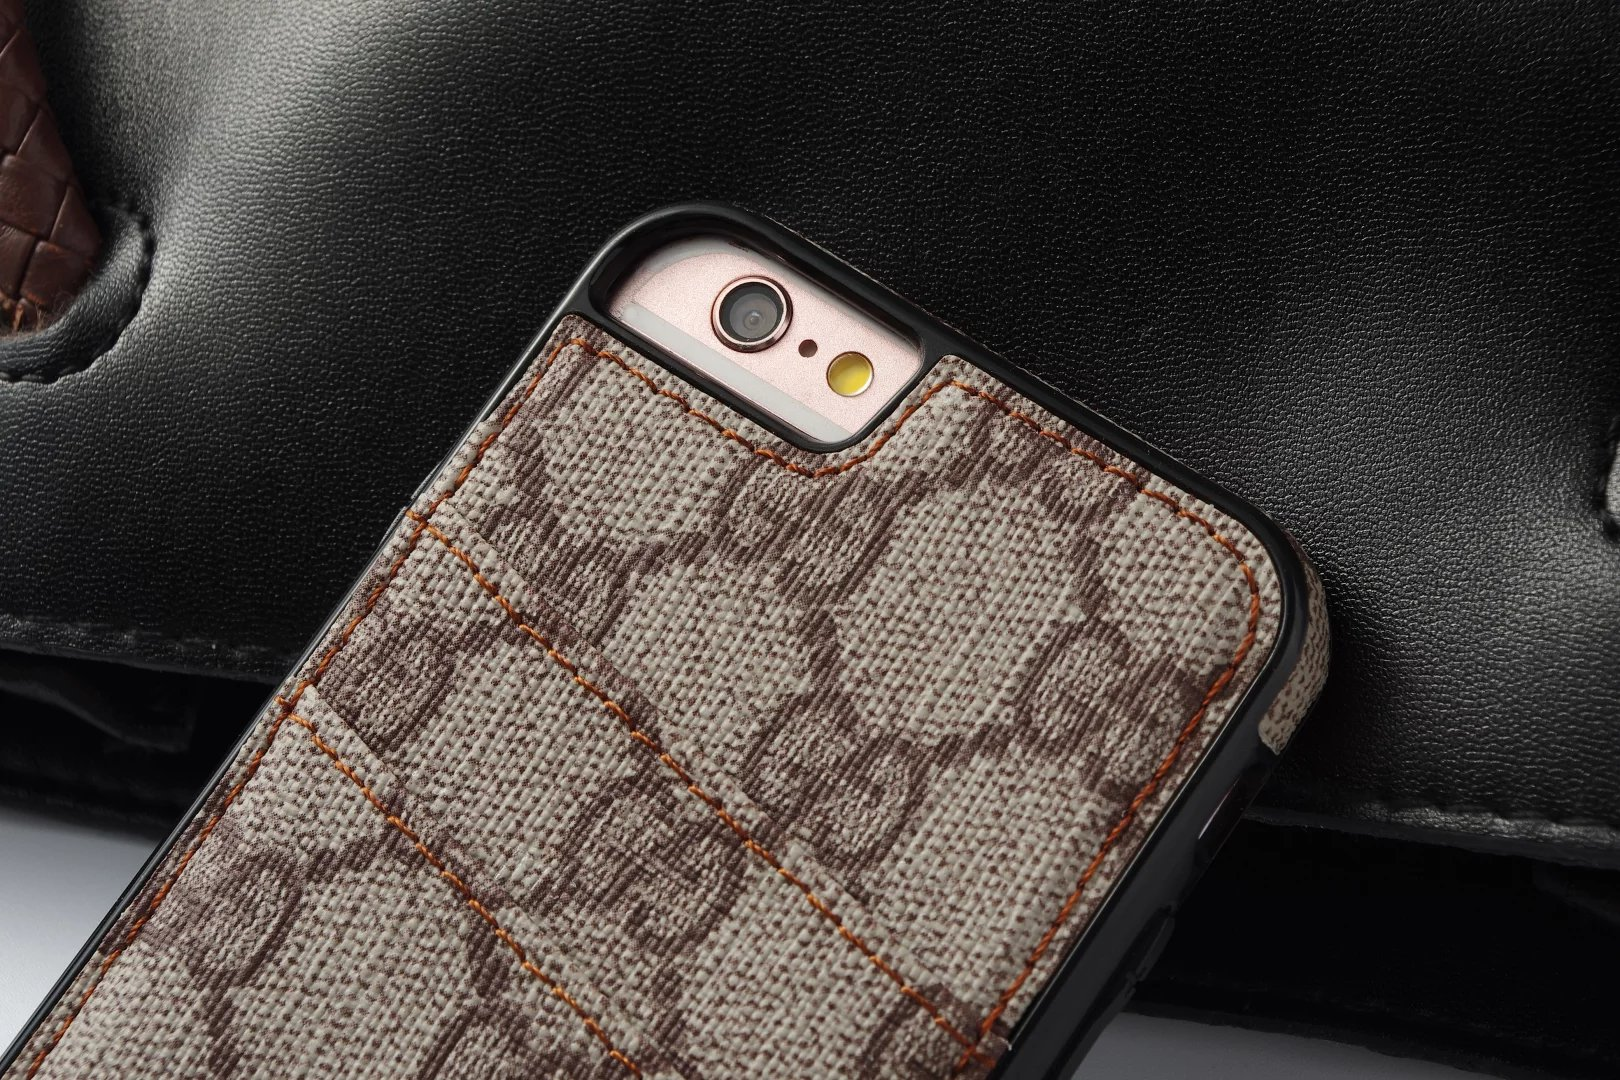 phone covers for iphone 6s iphone cover 6s fashion iphone6s case the apple iphone 6s iphone rumors release date designer leather iphone case cases for 6s case for 6s inch phone iphone six price